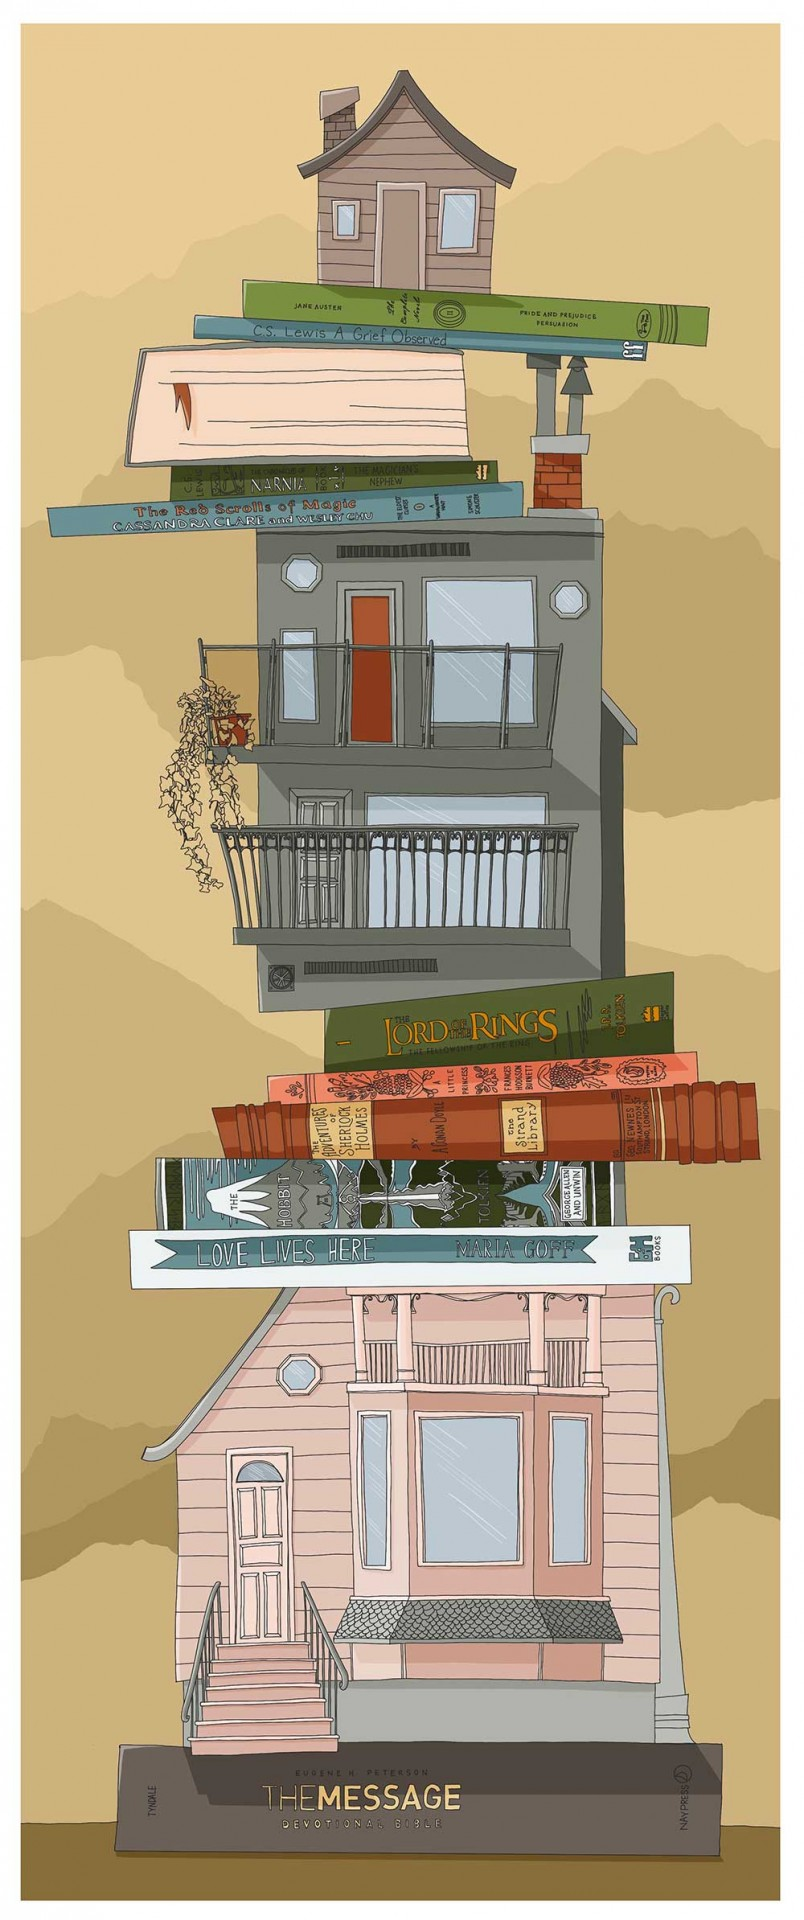 A digital illustration with a golden yellow background. The foreground features a stack of houses and books, spines facing out. From the bottom up: a brown Bible that reads The Message: A Devotional Bible, the front of a two-storey pink house with stairs to the front door, a large bay window with column decorated balcony above and grey trim, a white book that reads Love Lives Here, a book with a grey mountain that reads The Hobbit, a dark red book that reads The Adventures of Sherlock Holmes, a pink book that reads A Little Princess, a dark green book that reads The Lord of the Rings: The Fellowship of the Ring, the rear of a grey two-storey house with a balcony on each storey, a blue book that reads The Red Scrolls of Magic, a green book that reads The Chronicles of Narnia: Book 1 The Magician's Nephew, a thick grey book with the white pages side facing forward and a red bookmark hanging out, a blue book that reads A Grief Observed, a green book that reads The Complete Novels: Pride and Prejudice, Persuasion, and at the top is a a small one-storey brown house with brown trim.